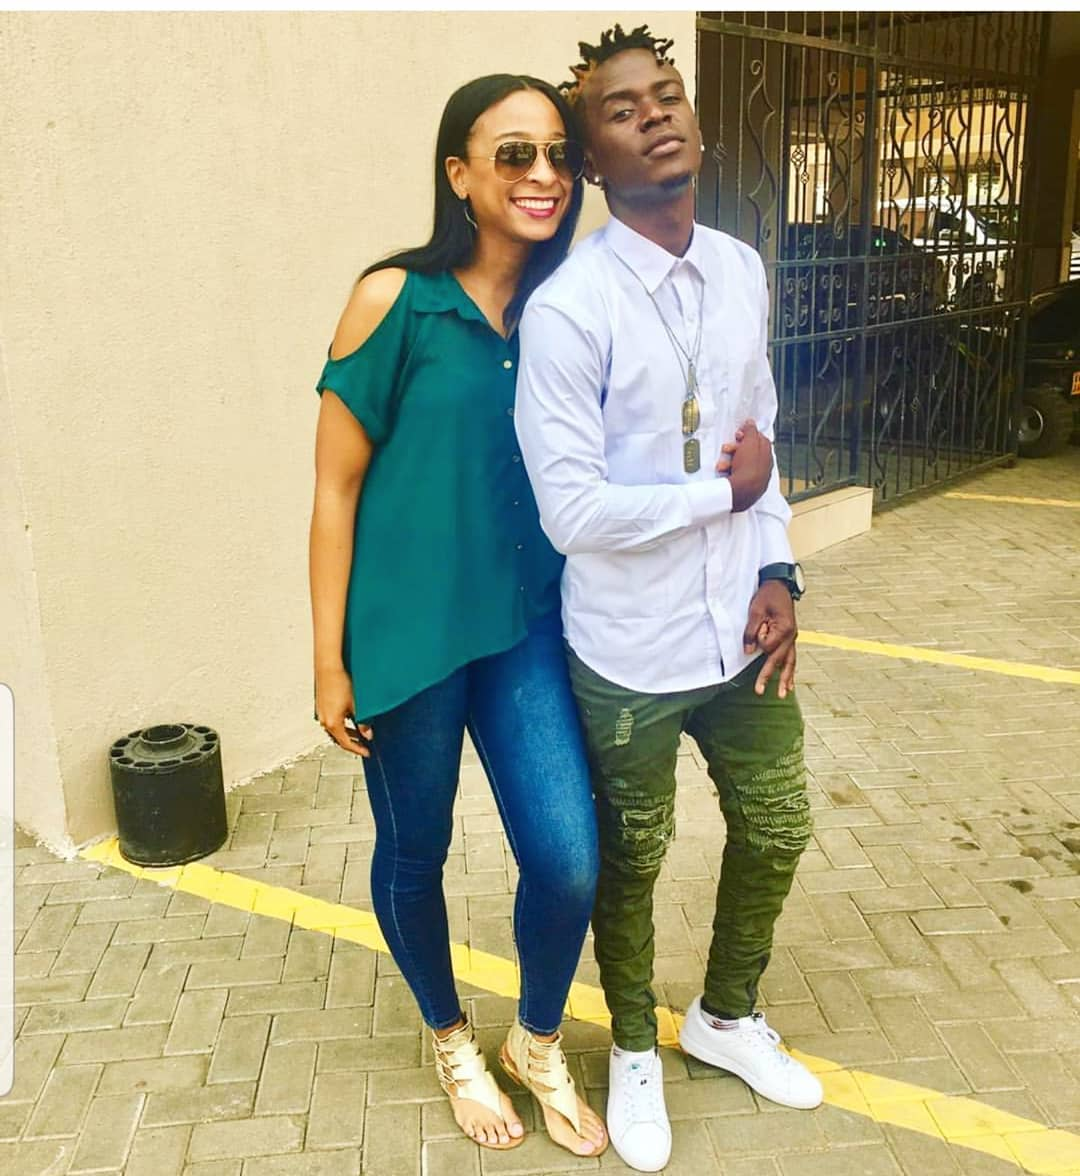 66920442 128414121730345 284010014223492679 n - 'We were good together, please unblock me,' Willy Paul begs Alaine